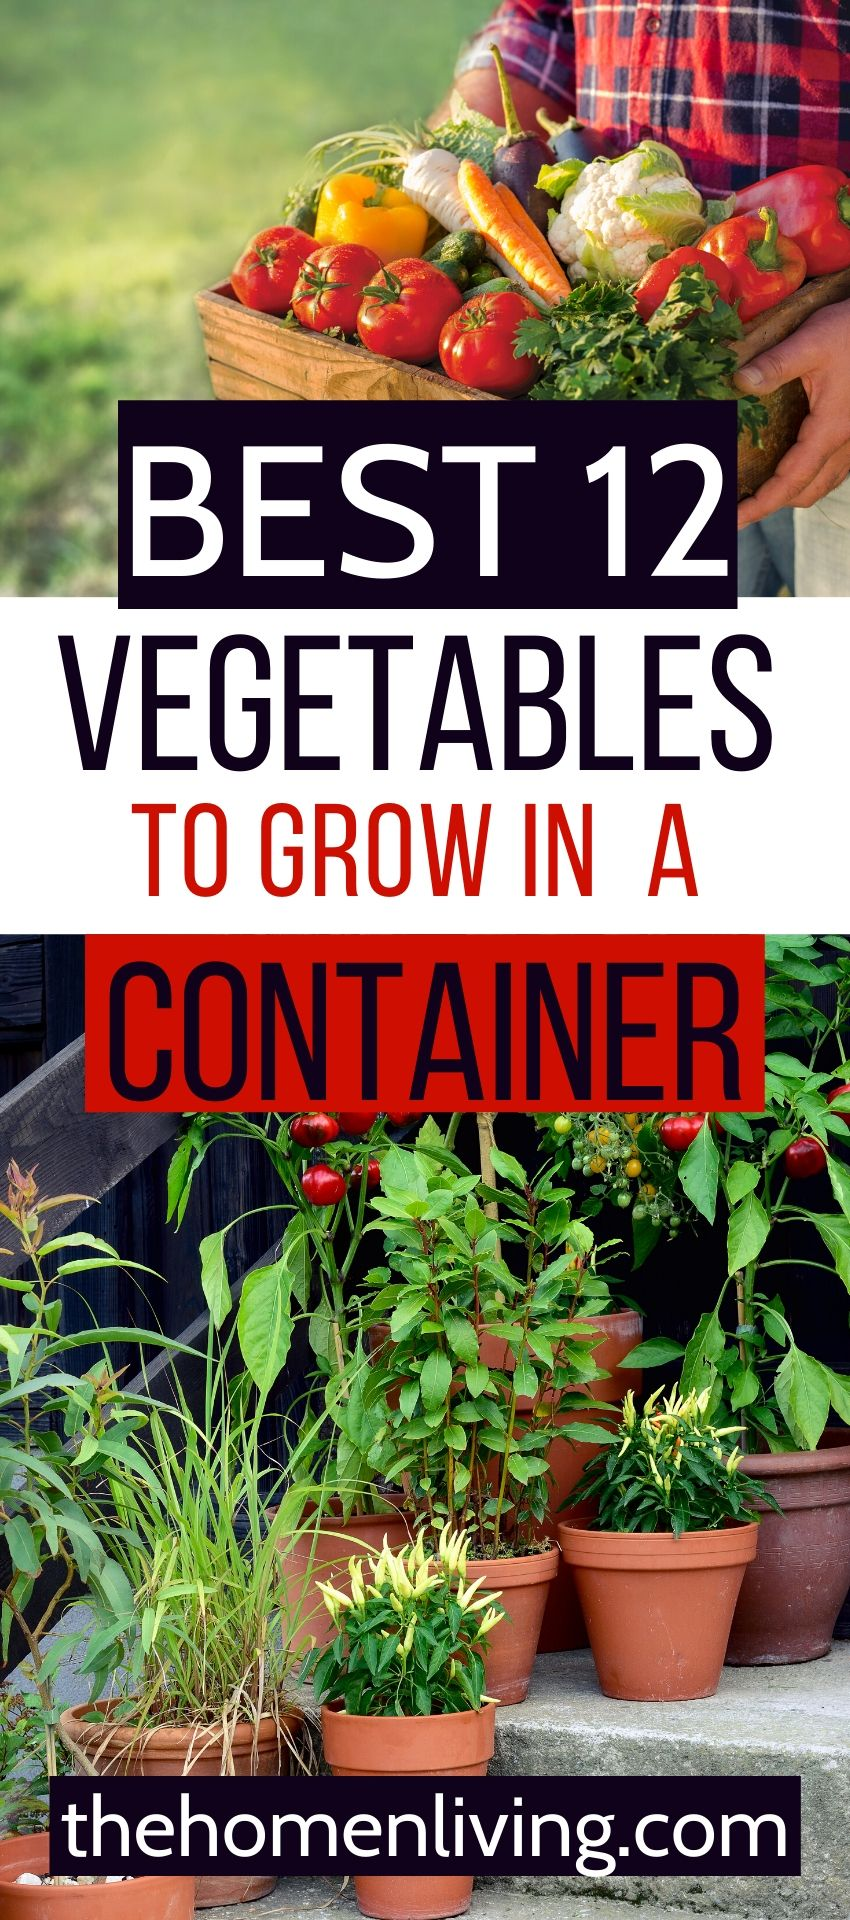 1ea7365203134fdf6333efce1f129a3f - Best Soil To Use For Container Gardening